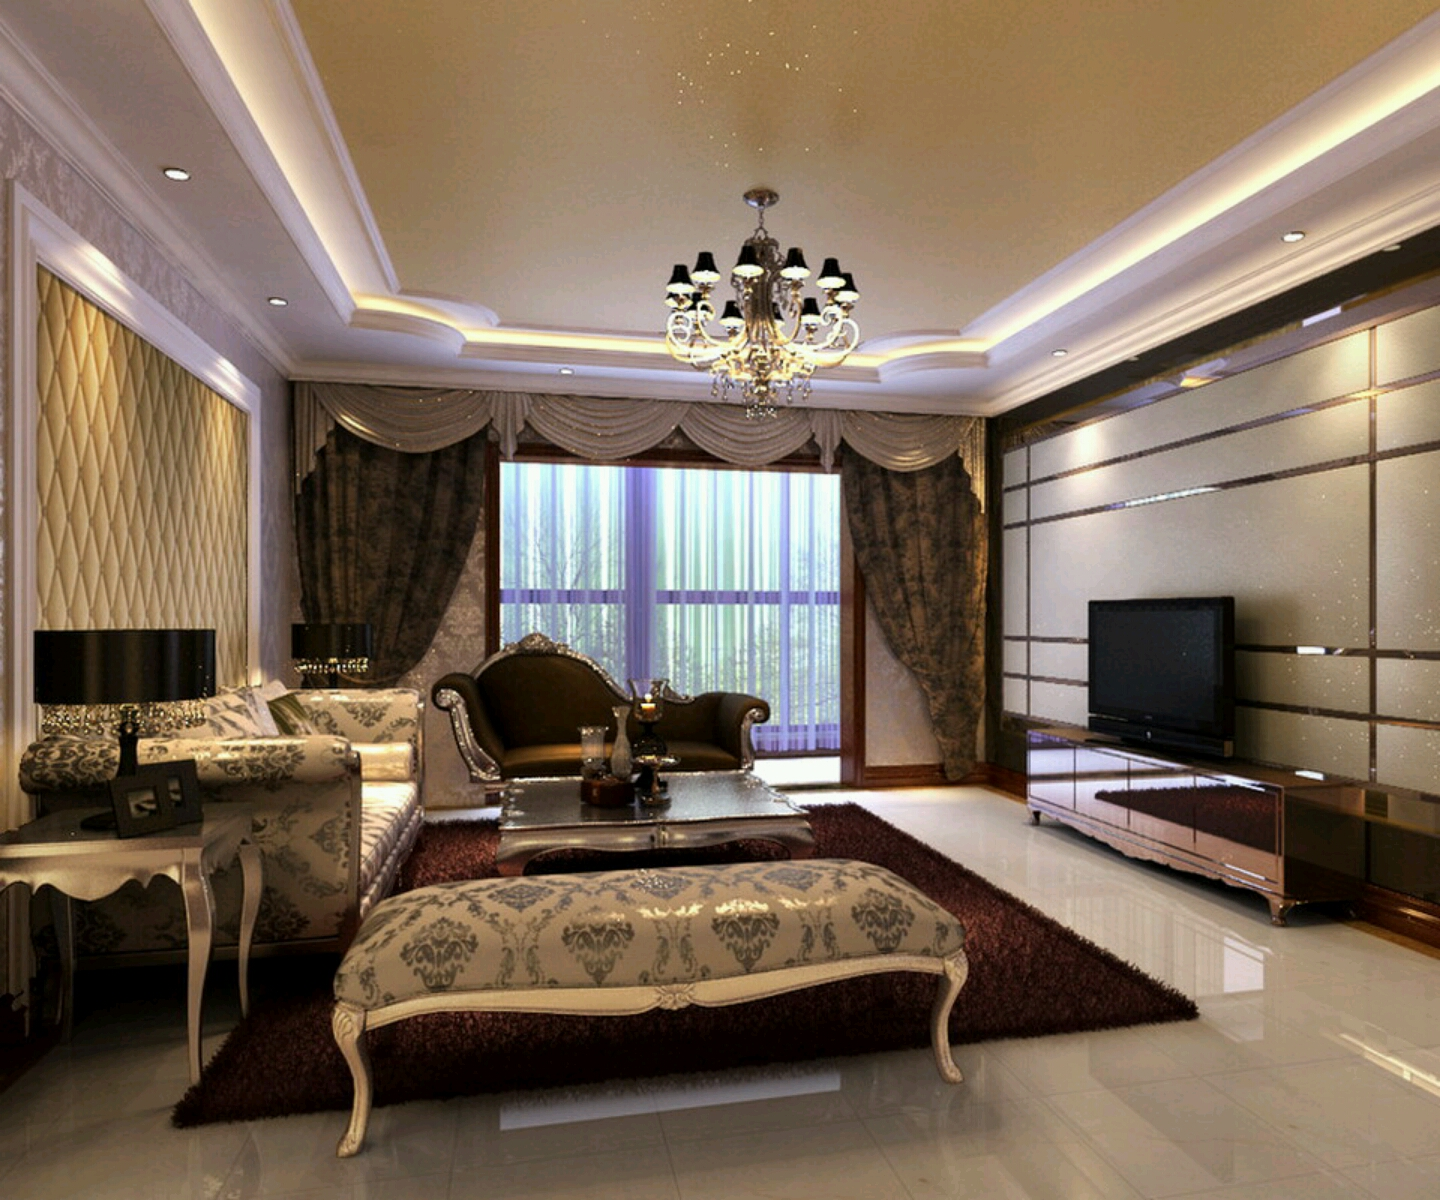 new home designs latest luxury homes interior decoration On interior design ideas living rooms